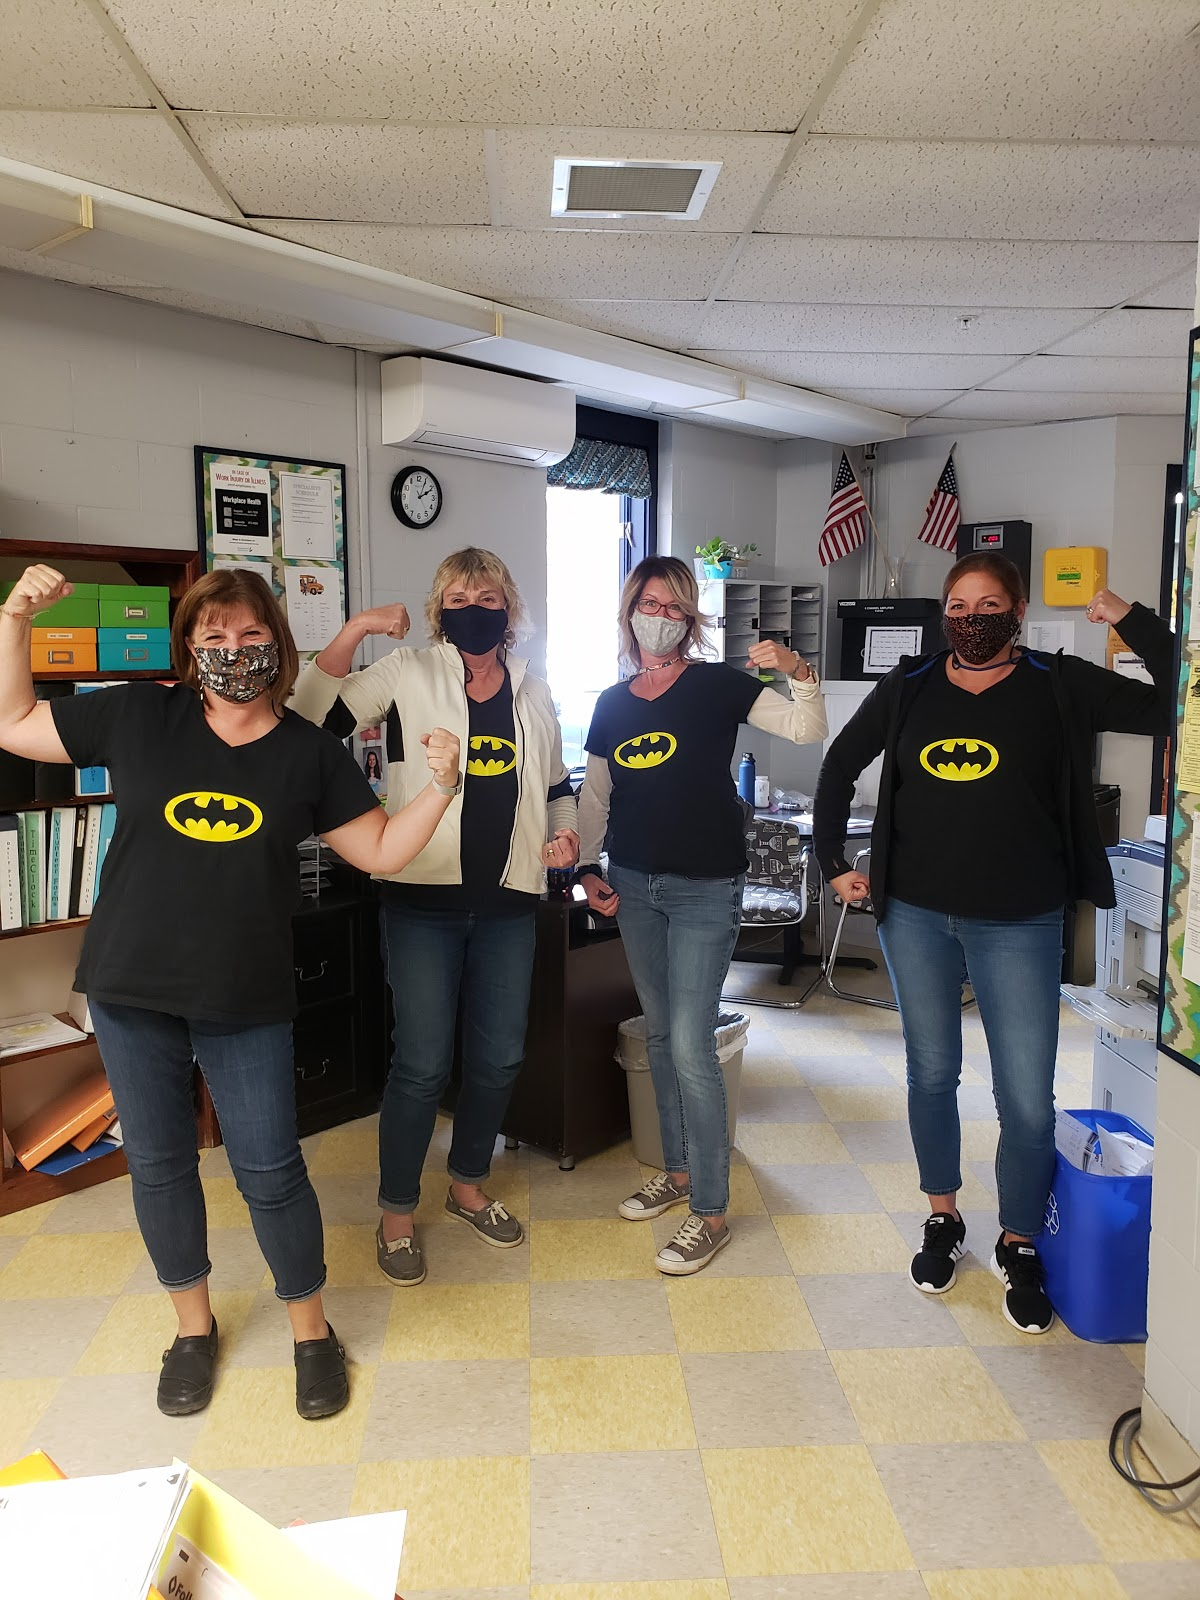 4 BCS staff members in protective masks wearing batman t-shirt on Superhero T-shirt day.